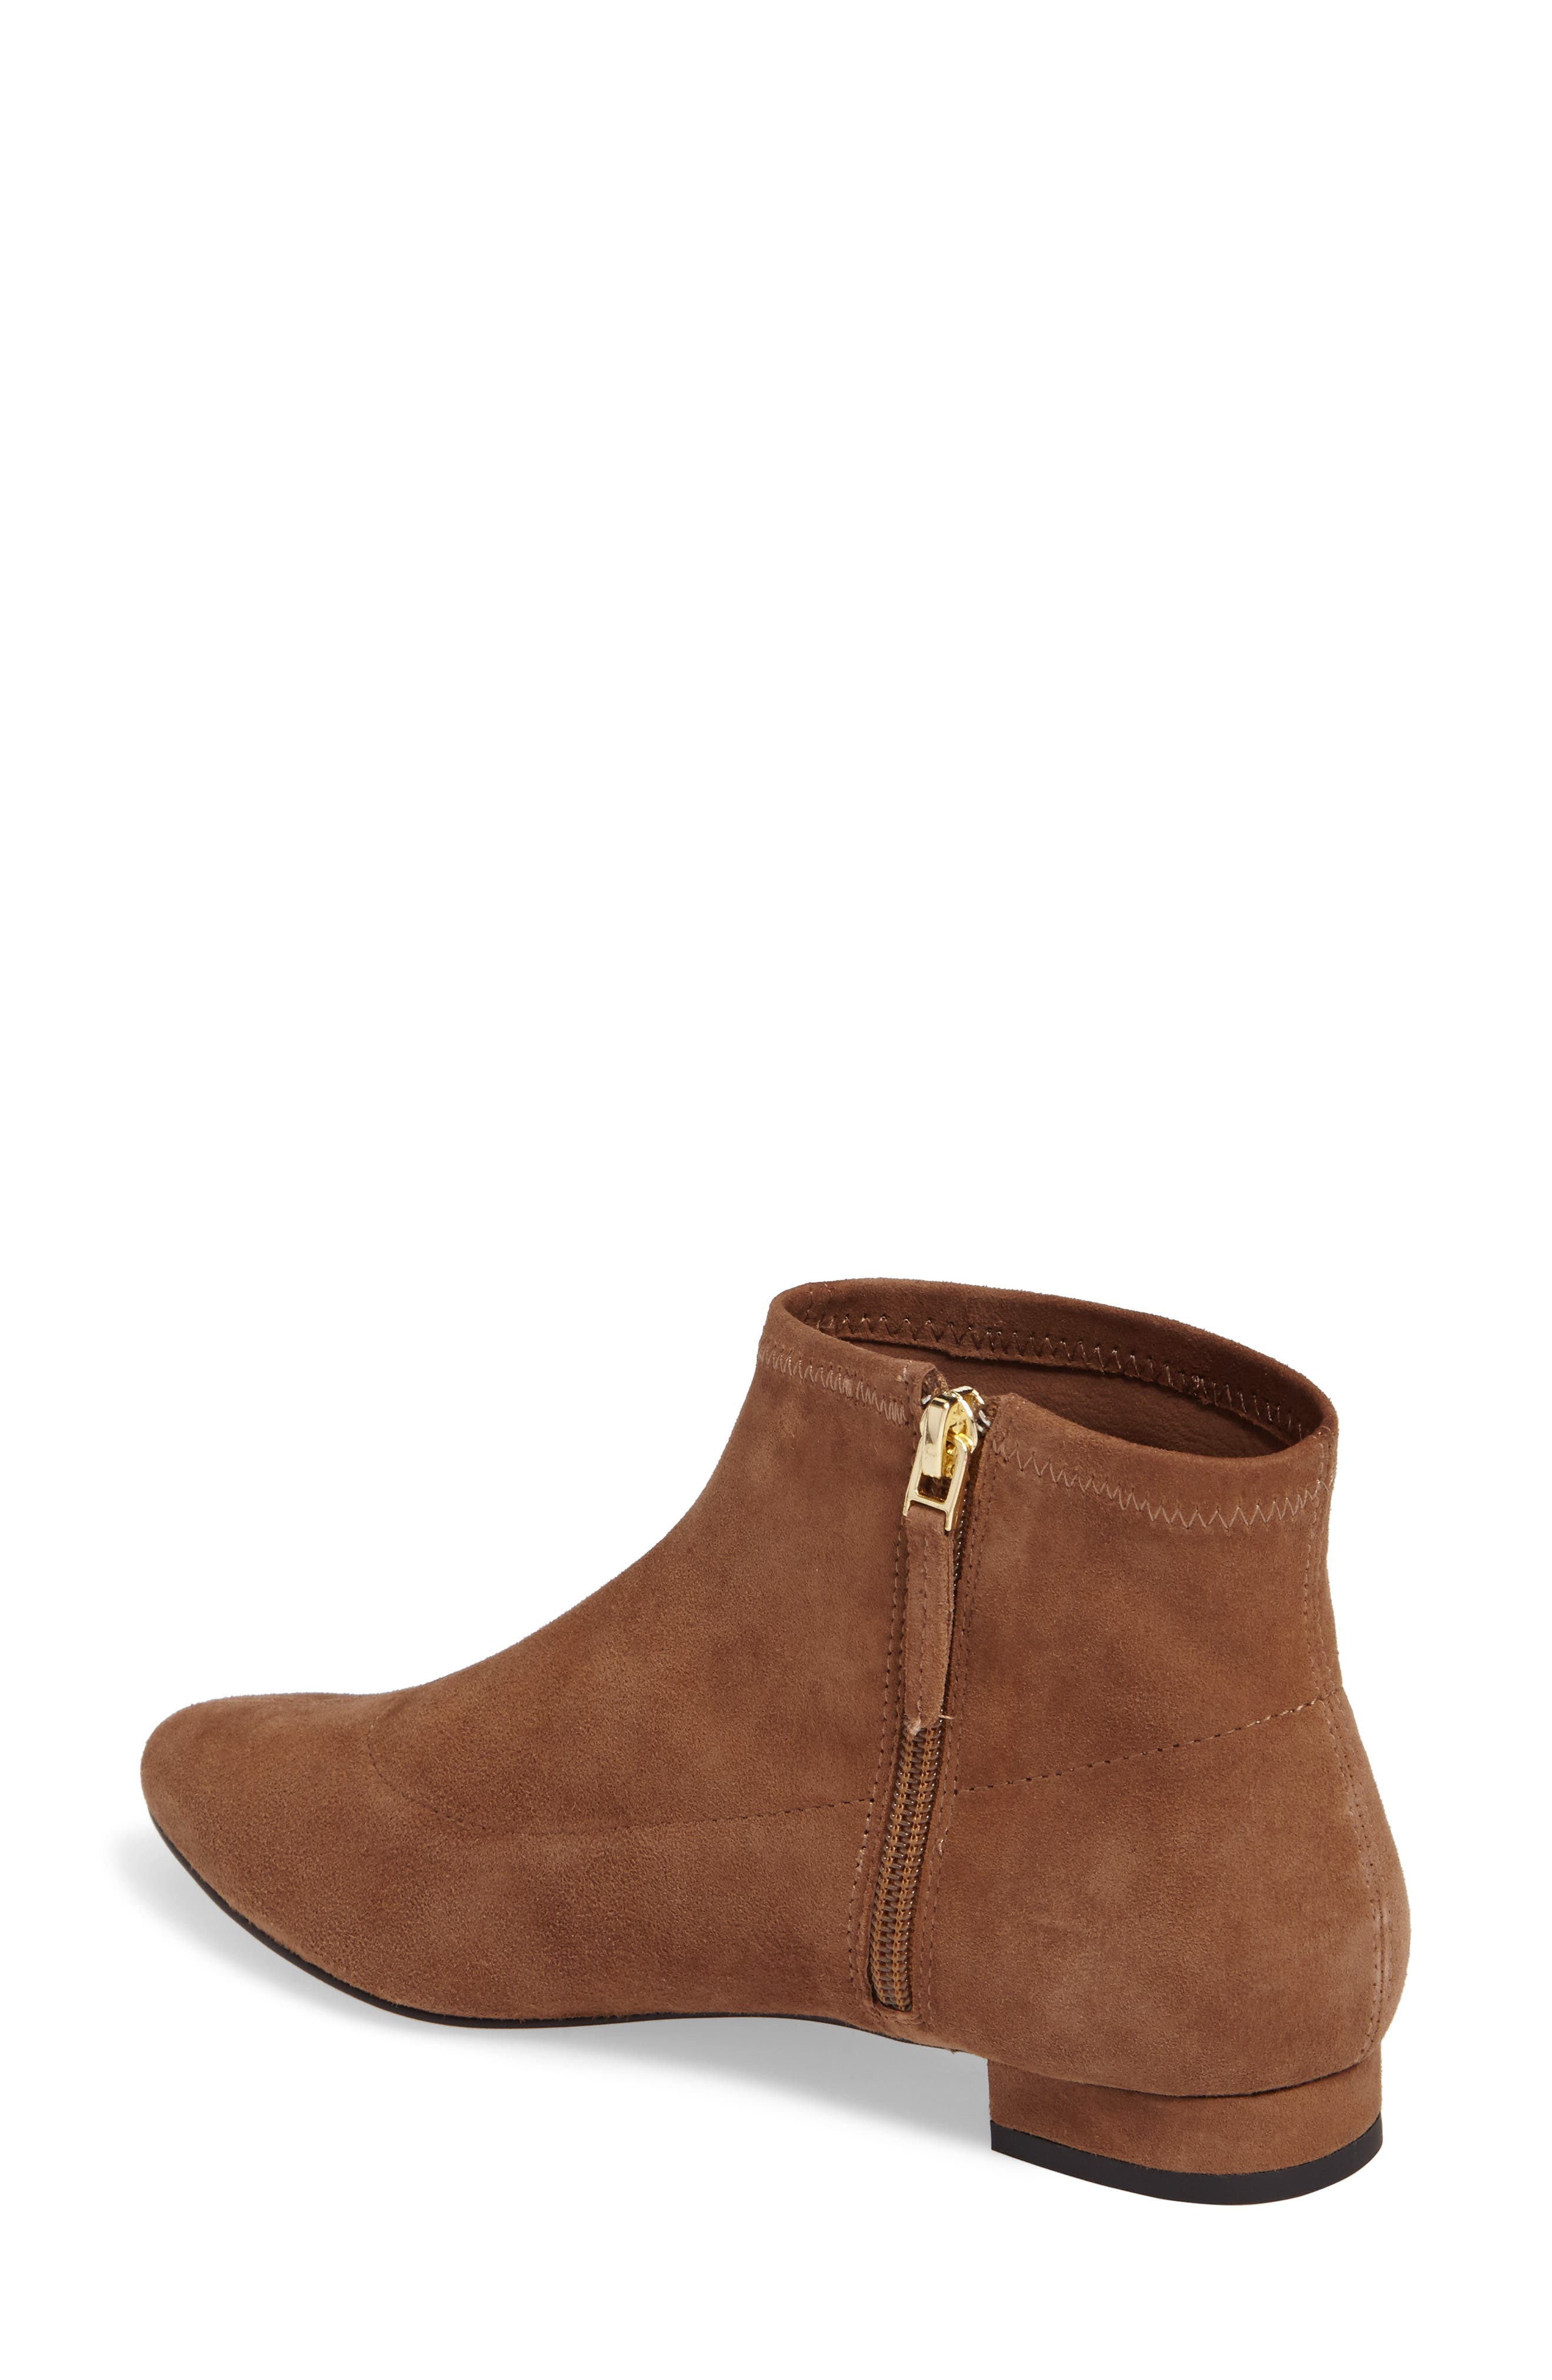 SUDINI, Aletta Bootie, Alternate thumbnail 2, color, TOBACCO SUEDE